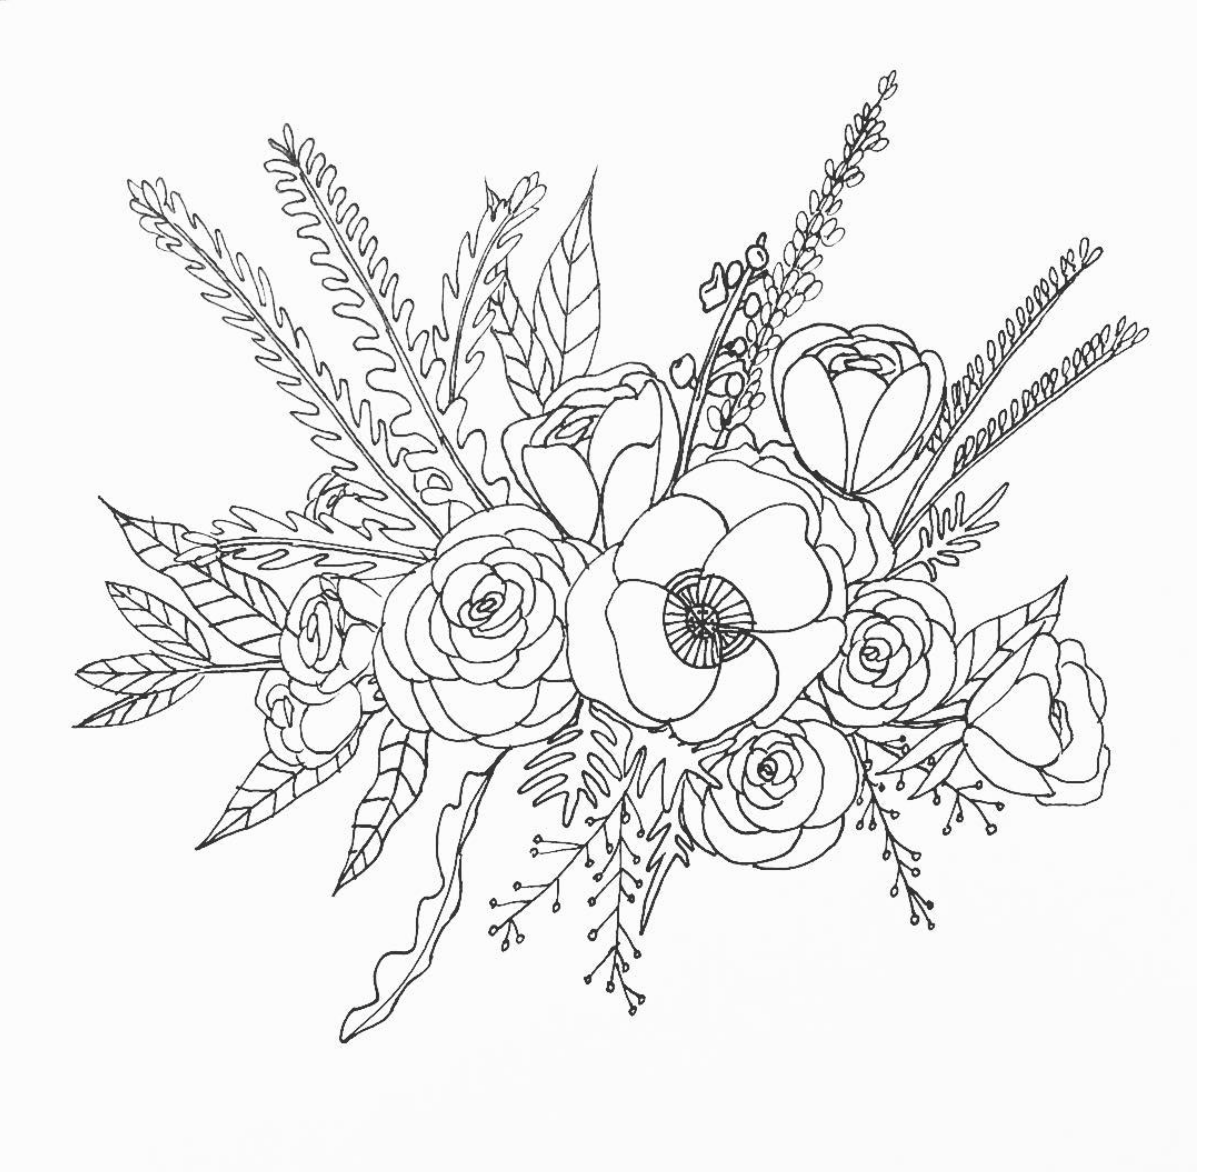 Line Drawing Of Flowers : Line drawing flower illustration floral bouquet art